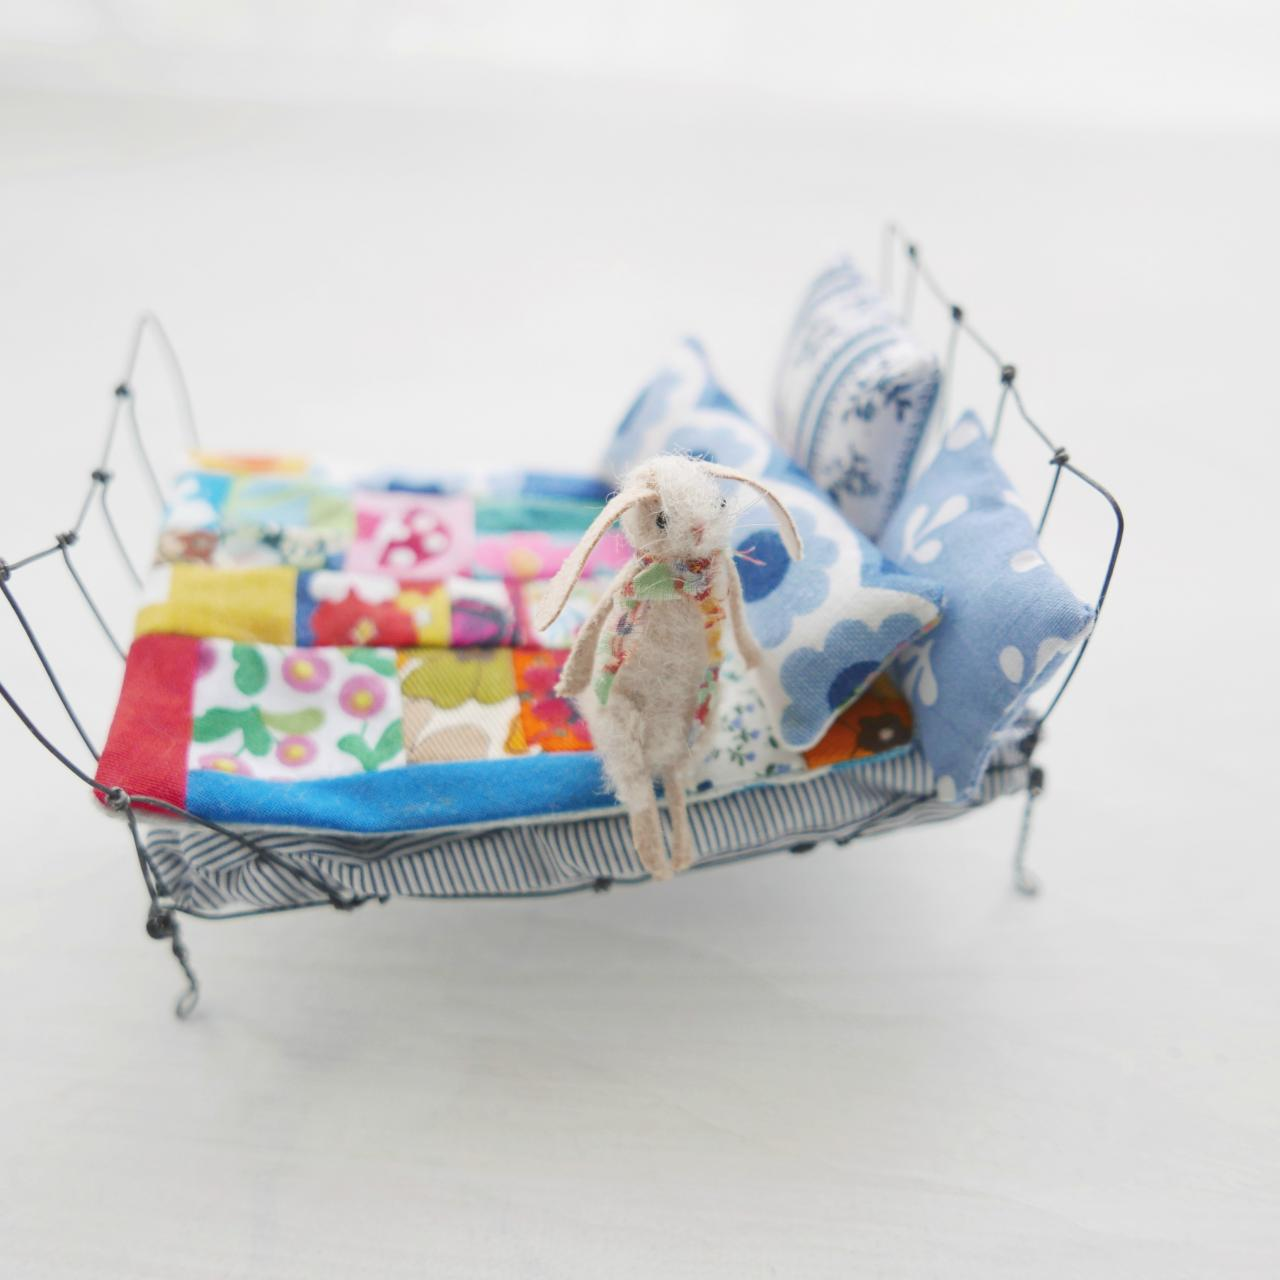 miniature rabbit on wire bed mixed media art doll by modflowers